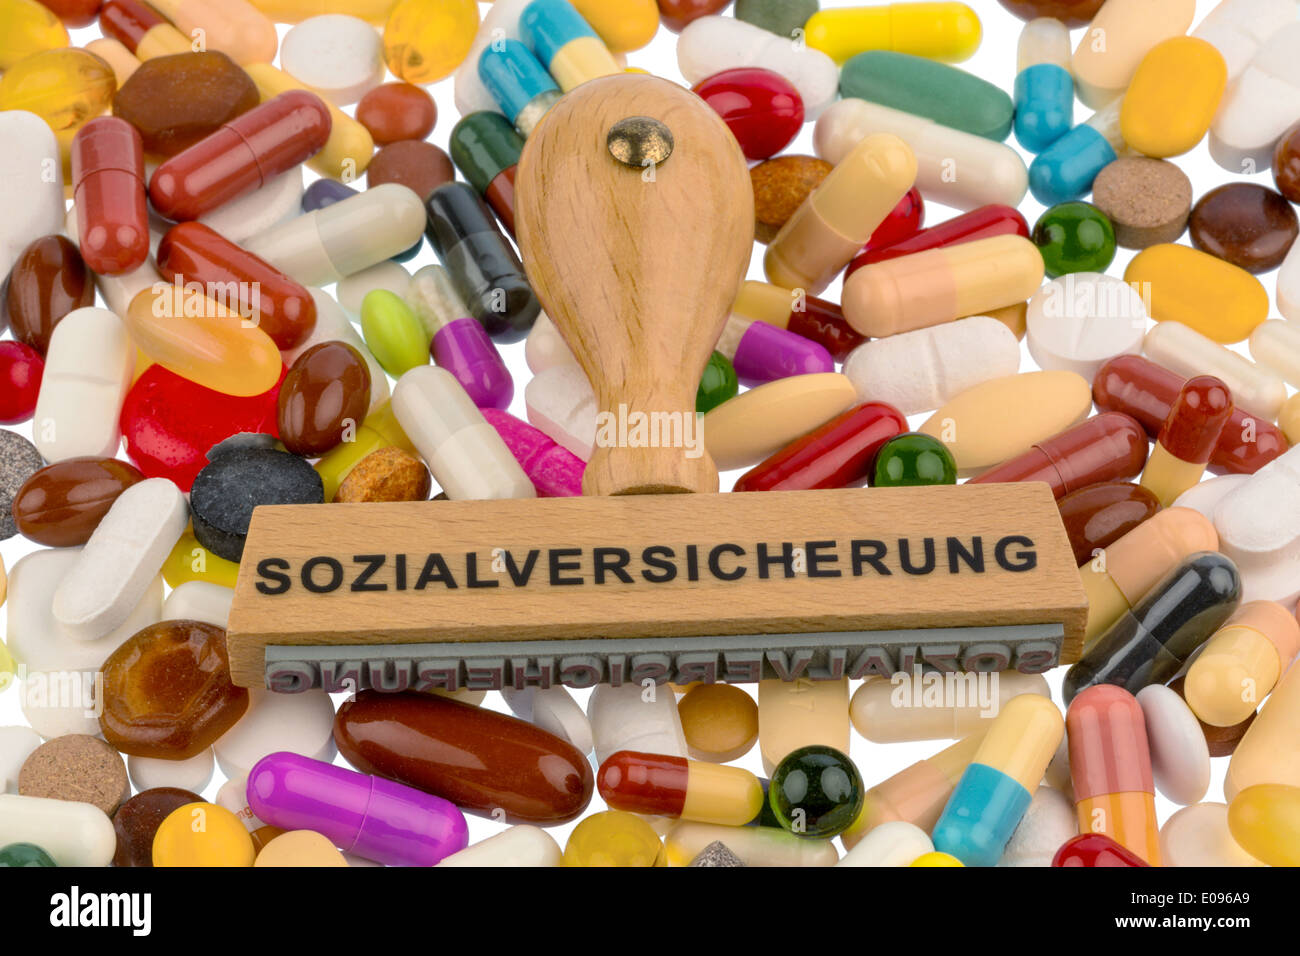 Stamp on coloured tablets, Symbolfot fue social security, drugs and cost allowance, Stempel auf bunten Tabletten, Symbolfot fue Stock Photo